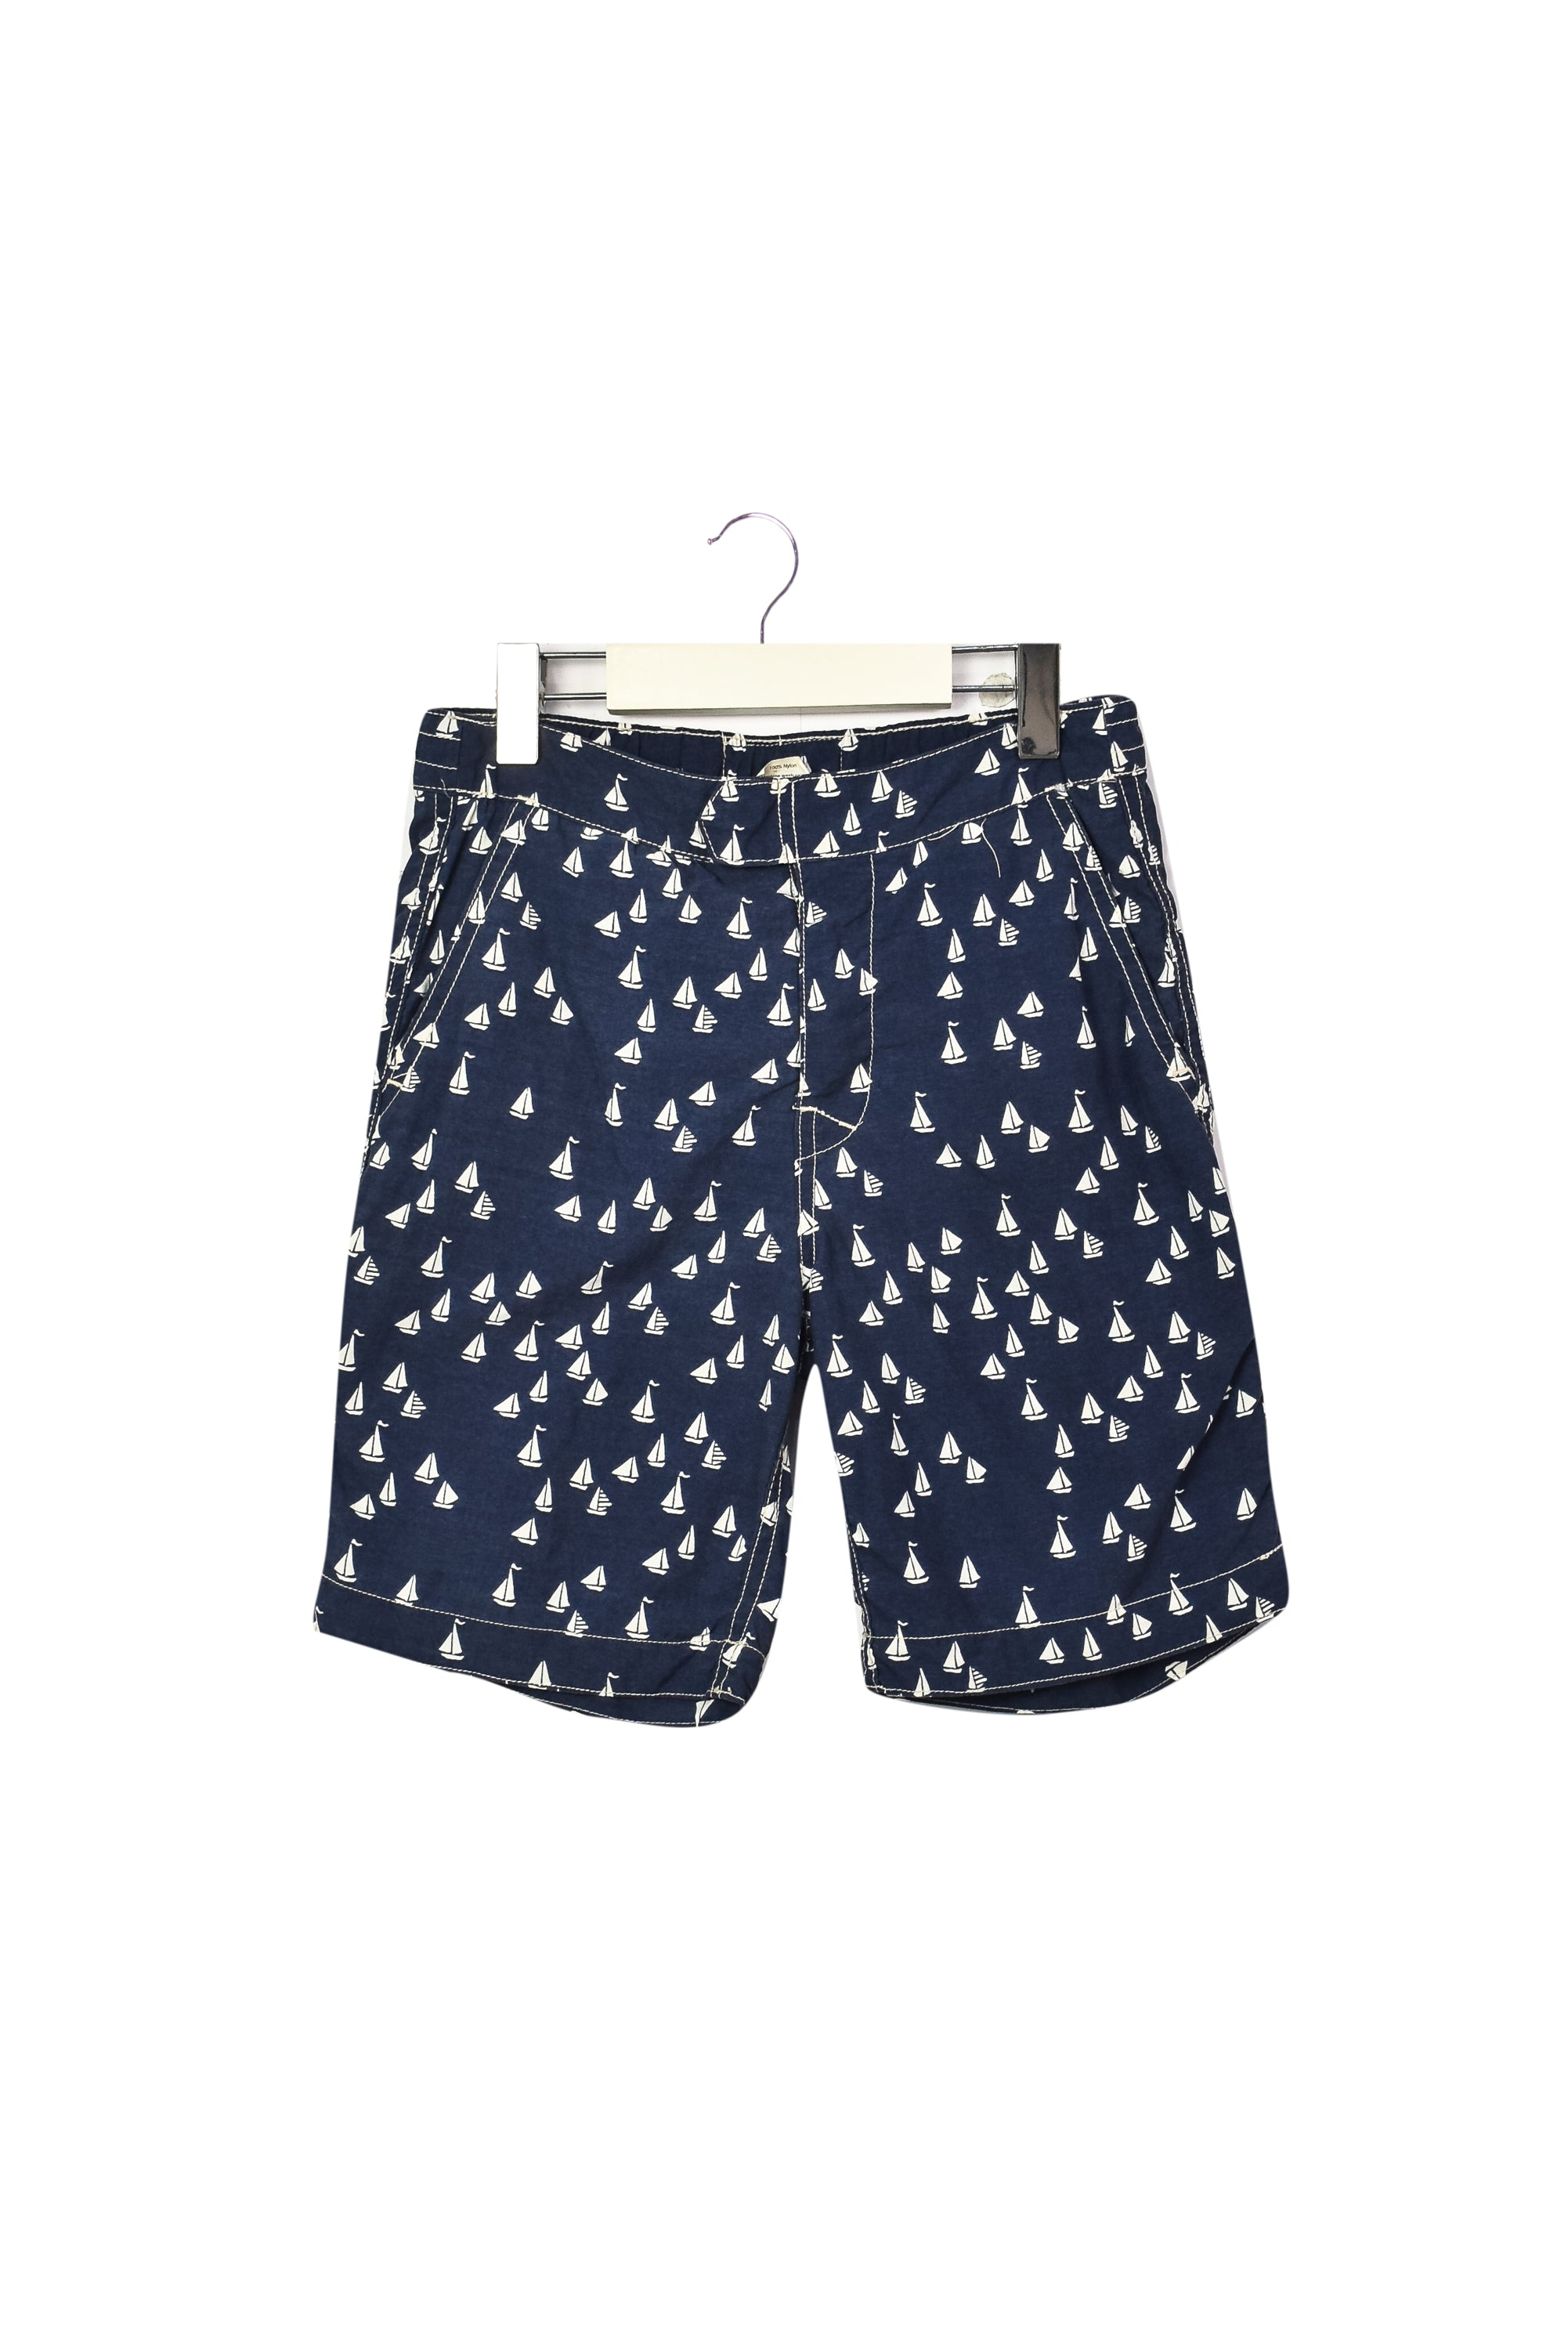 10037587 Crewcuts Kids~Shorts 8 at Retykle